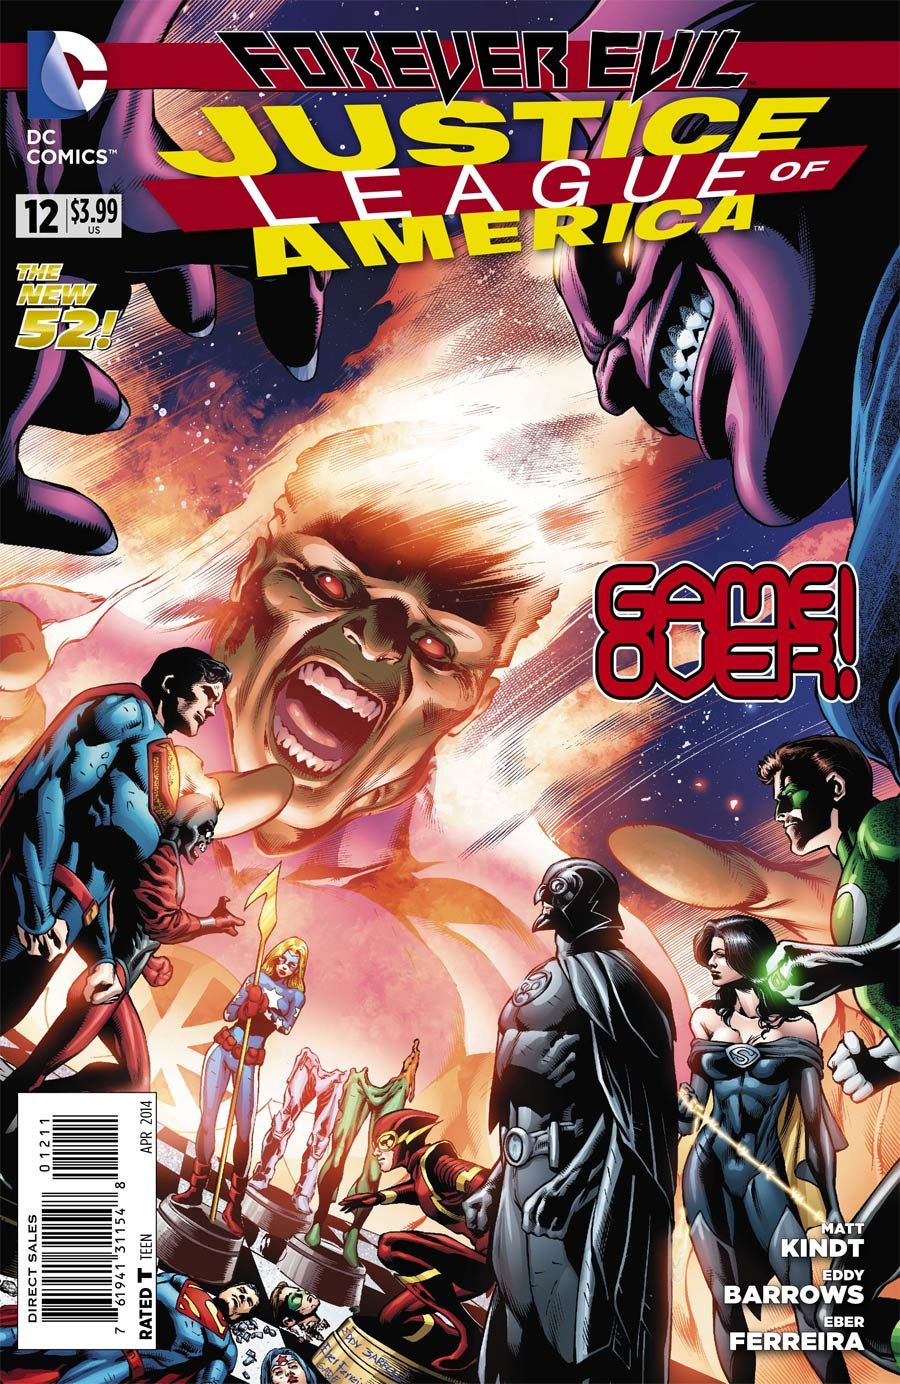 Justice League Of America Vol 3 #12 Cover A Regular Eddy Barrows Cover (Forever Evil Tie-In)